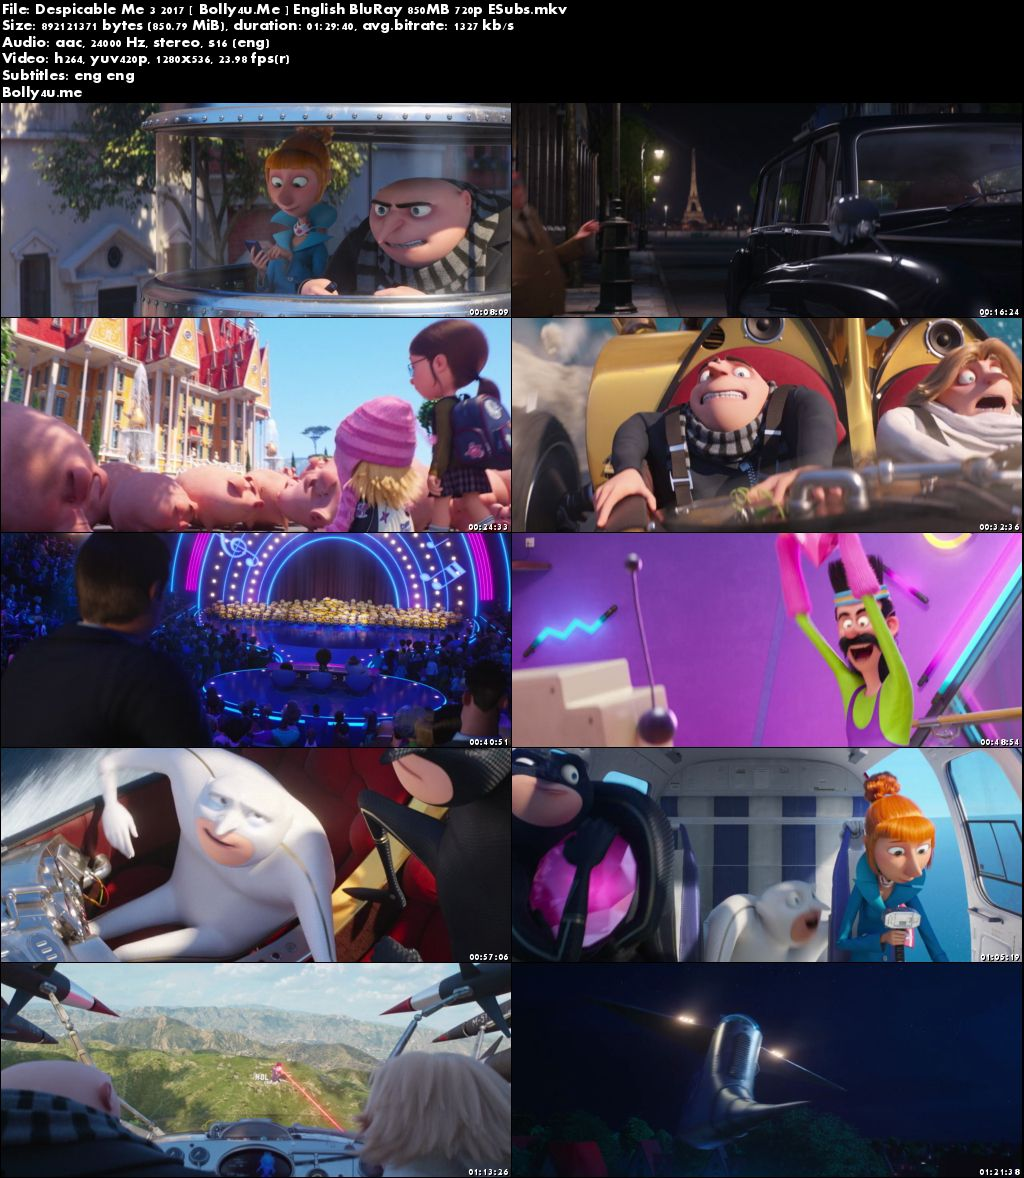 Despicable Me 3 2017 BluRay 850Mb English 720p ESubs Download